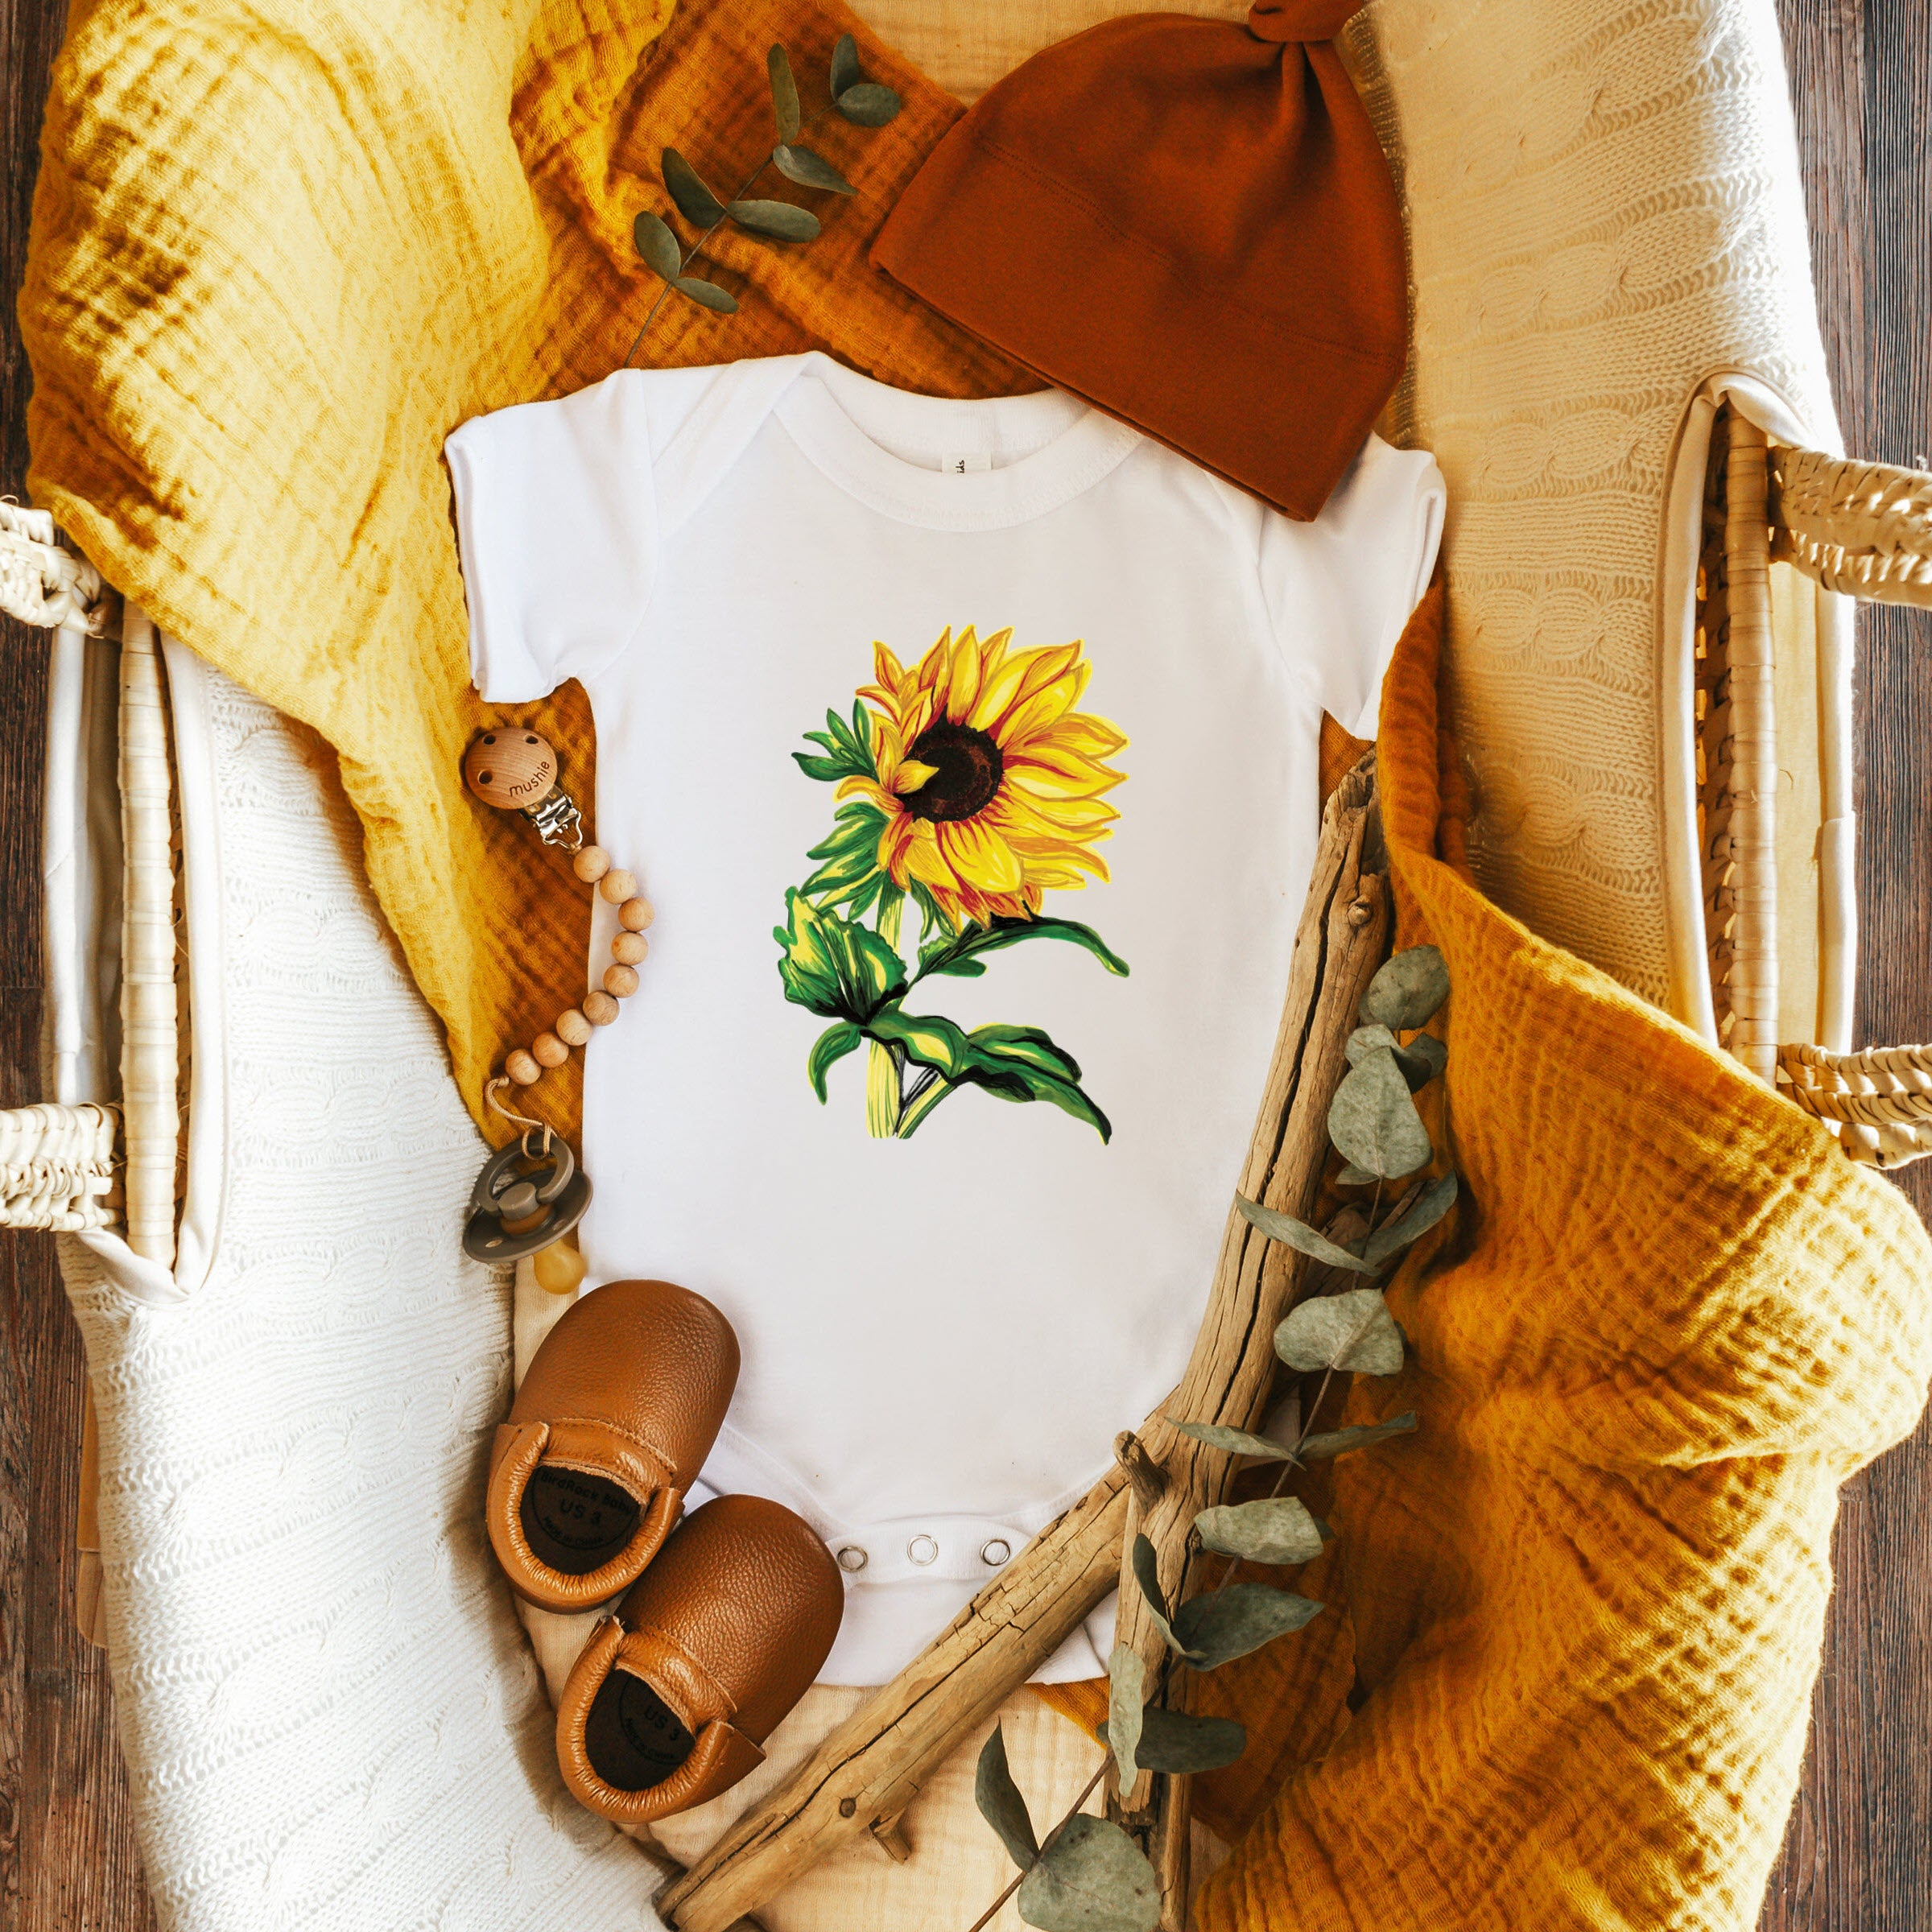 A white bodysuit with a sunflower on it